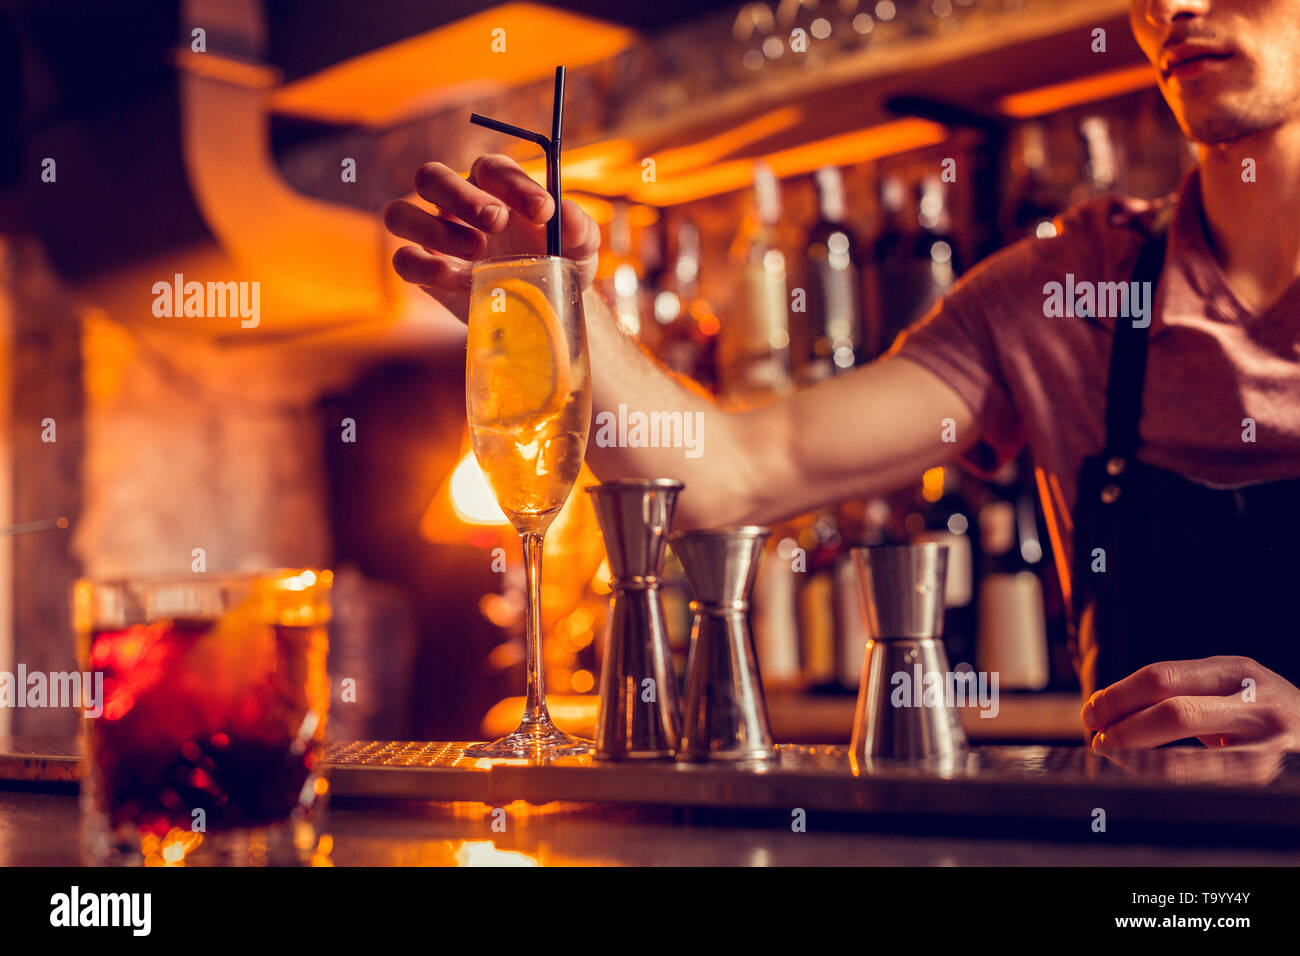 Barman putting straw into glass of cocktail with lemon - Stock Image